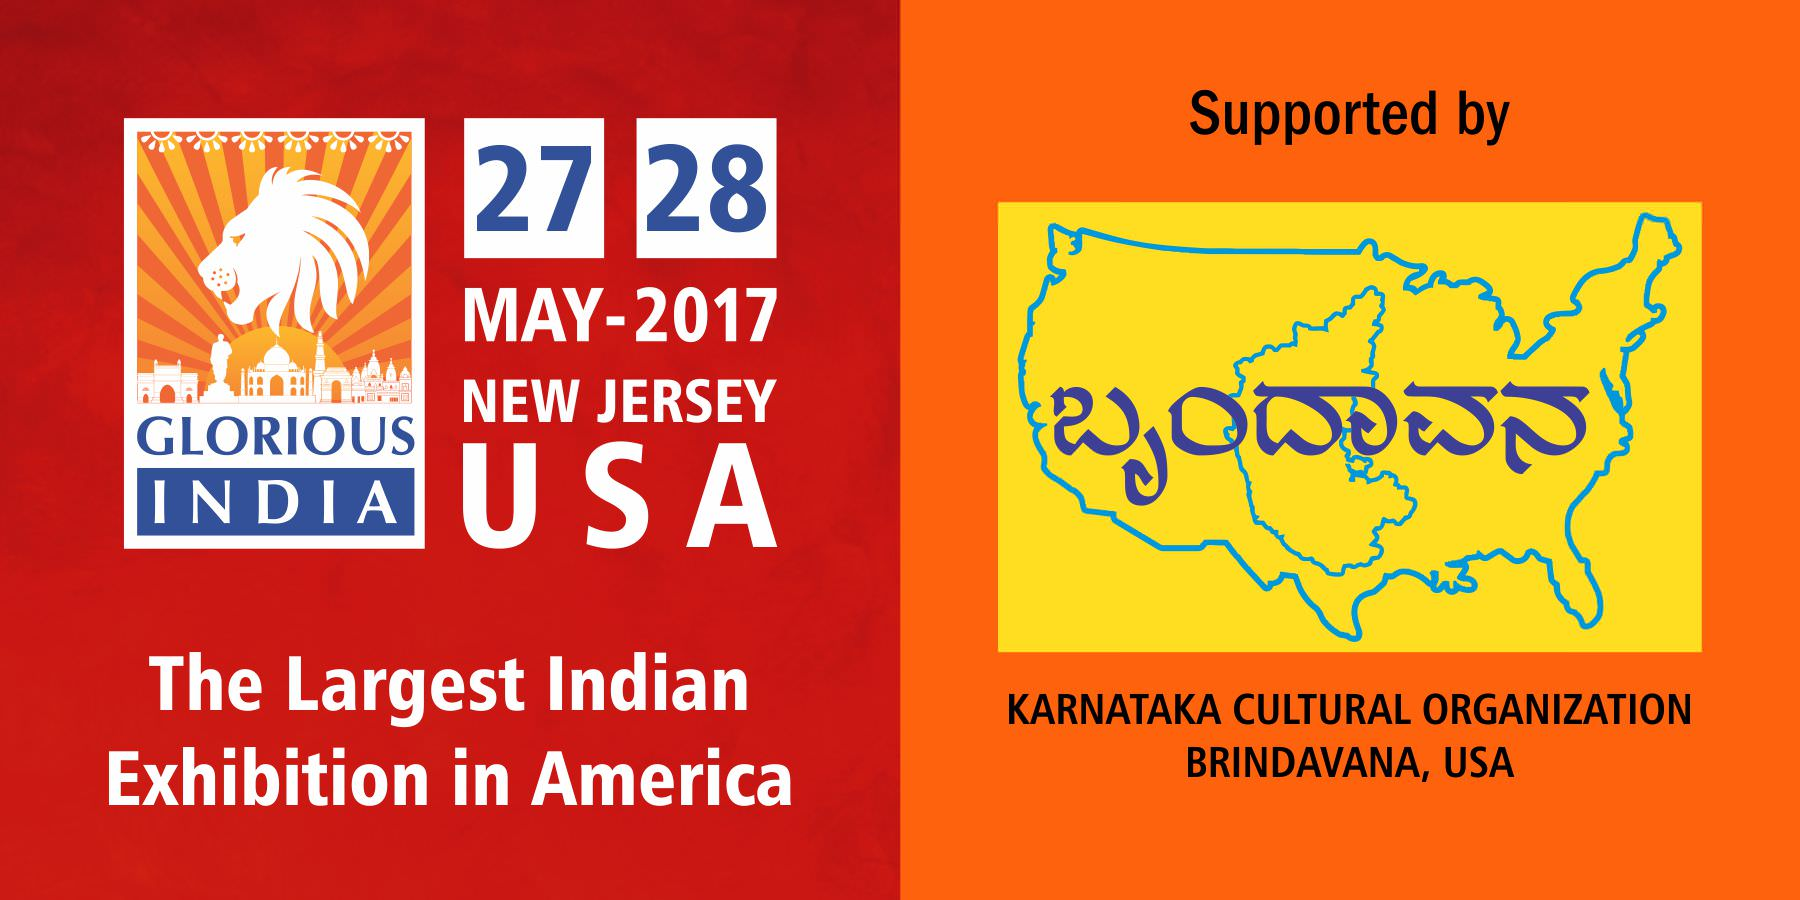 Glorious India Expo - Karnataka Cultural Organization - Brindavana (KCOB)